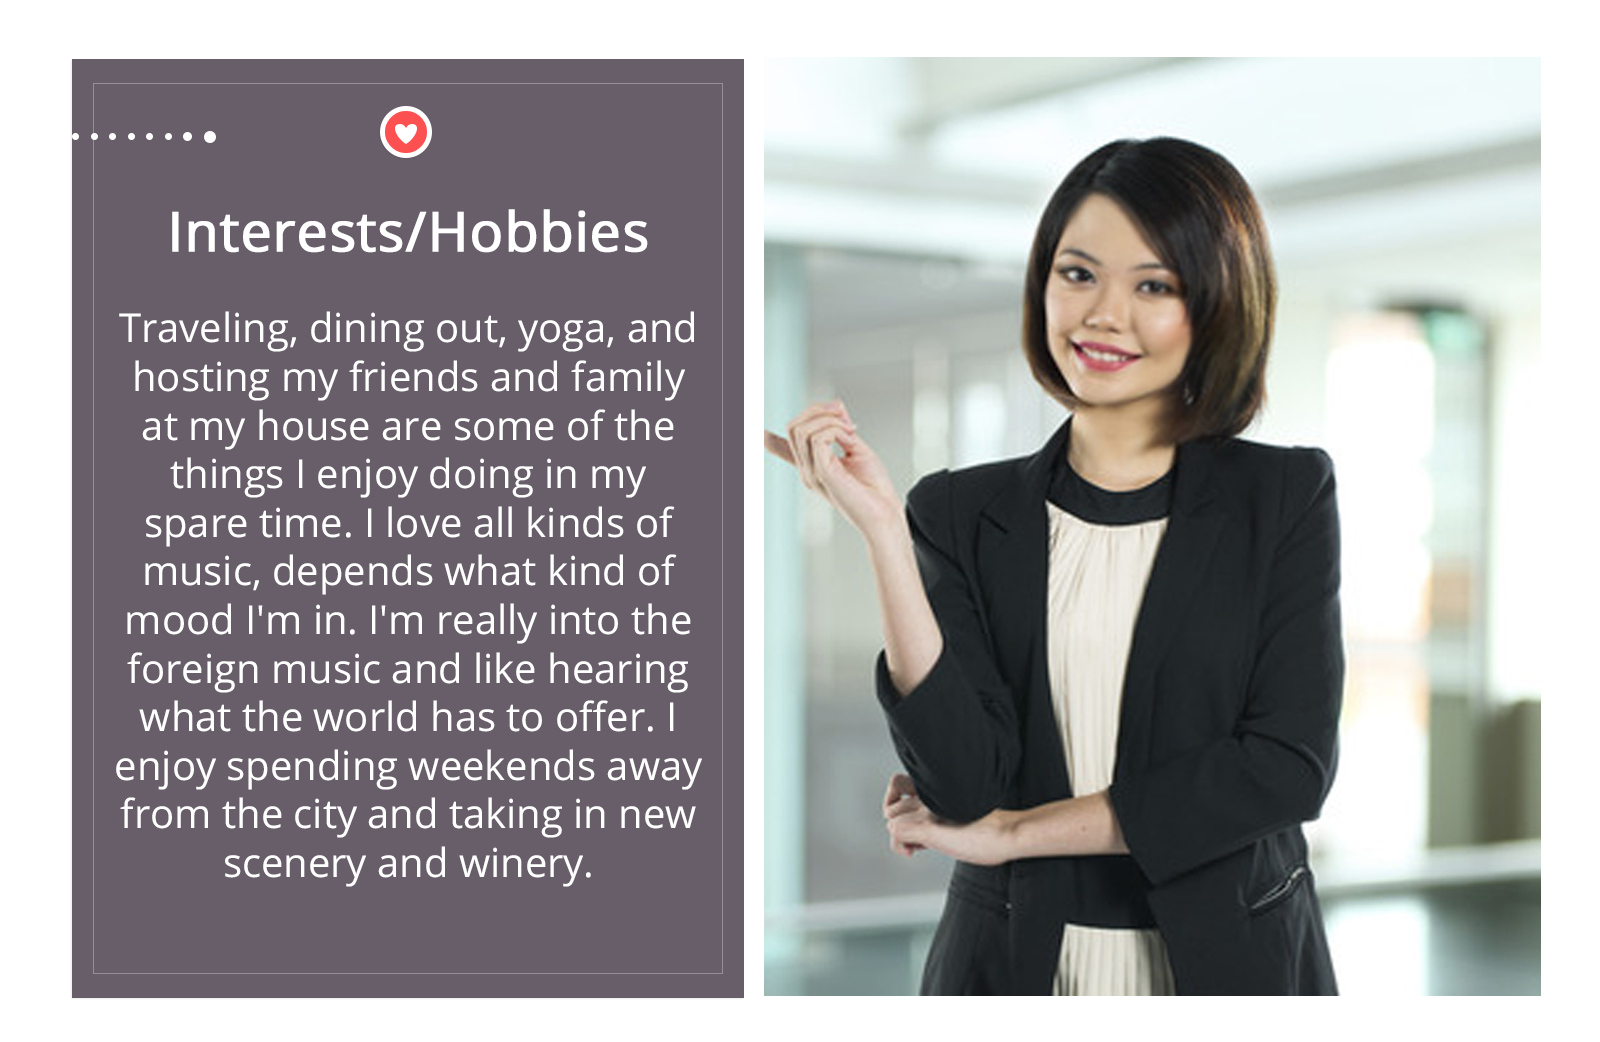 Blog  Select Introductions - LILY-interests.hobbies